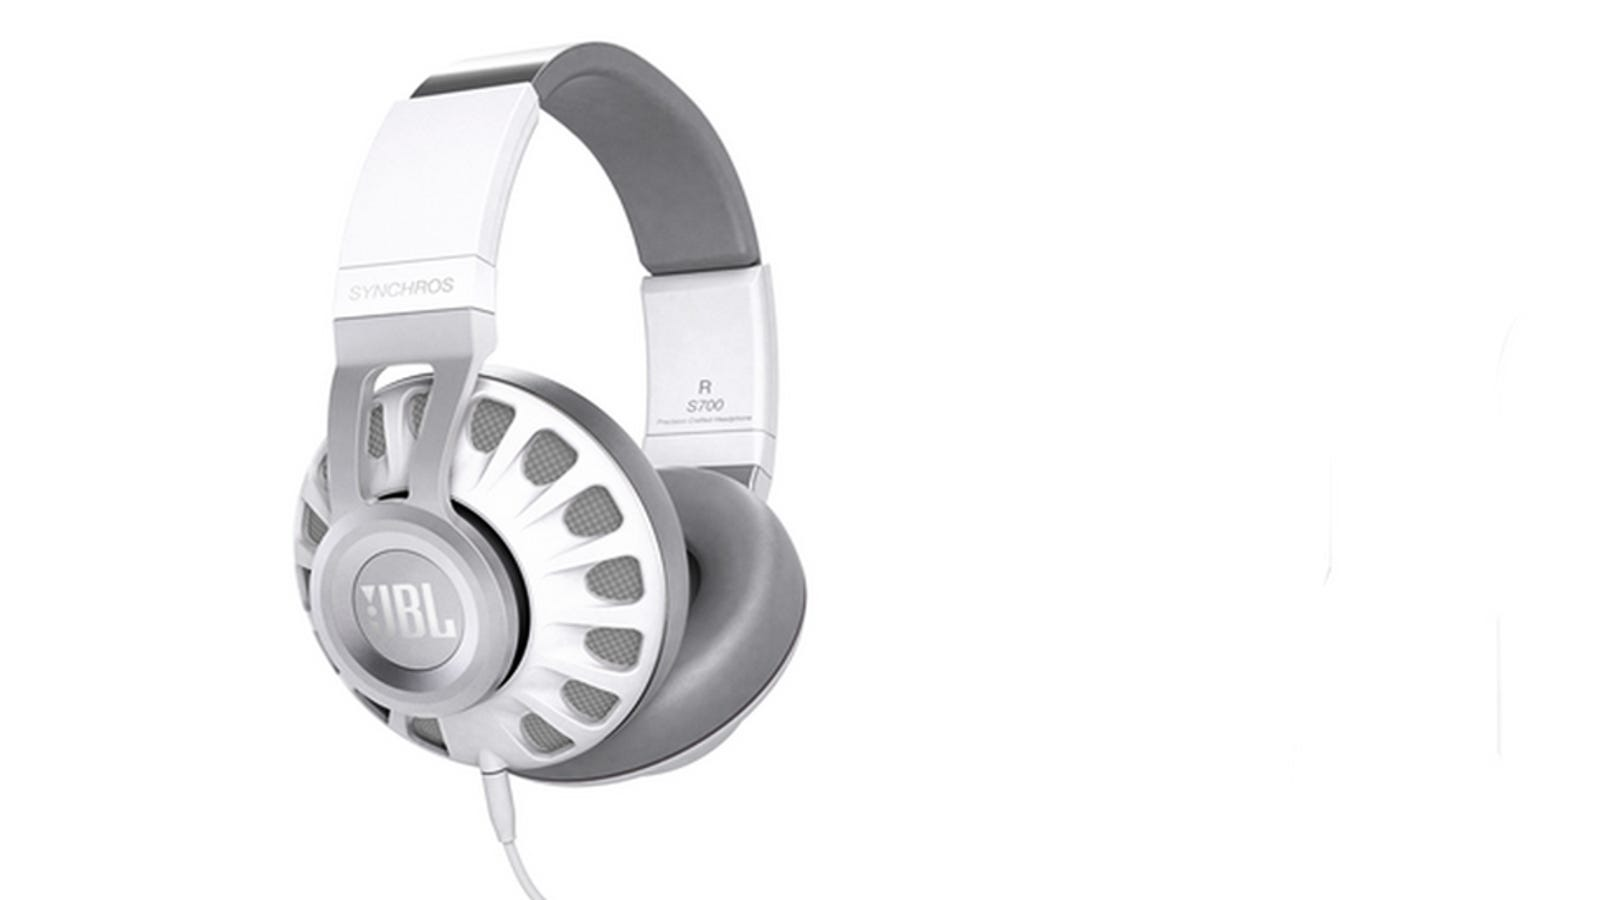 headphones for ps4 wireless camo - JBL's New Headphones Use Pro DSP to Sound Like a Live Performance